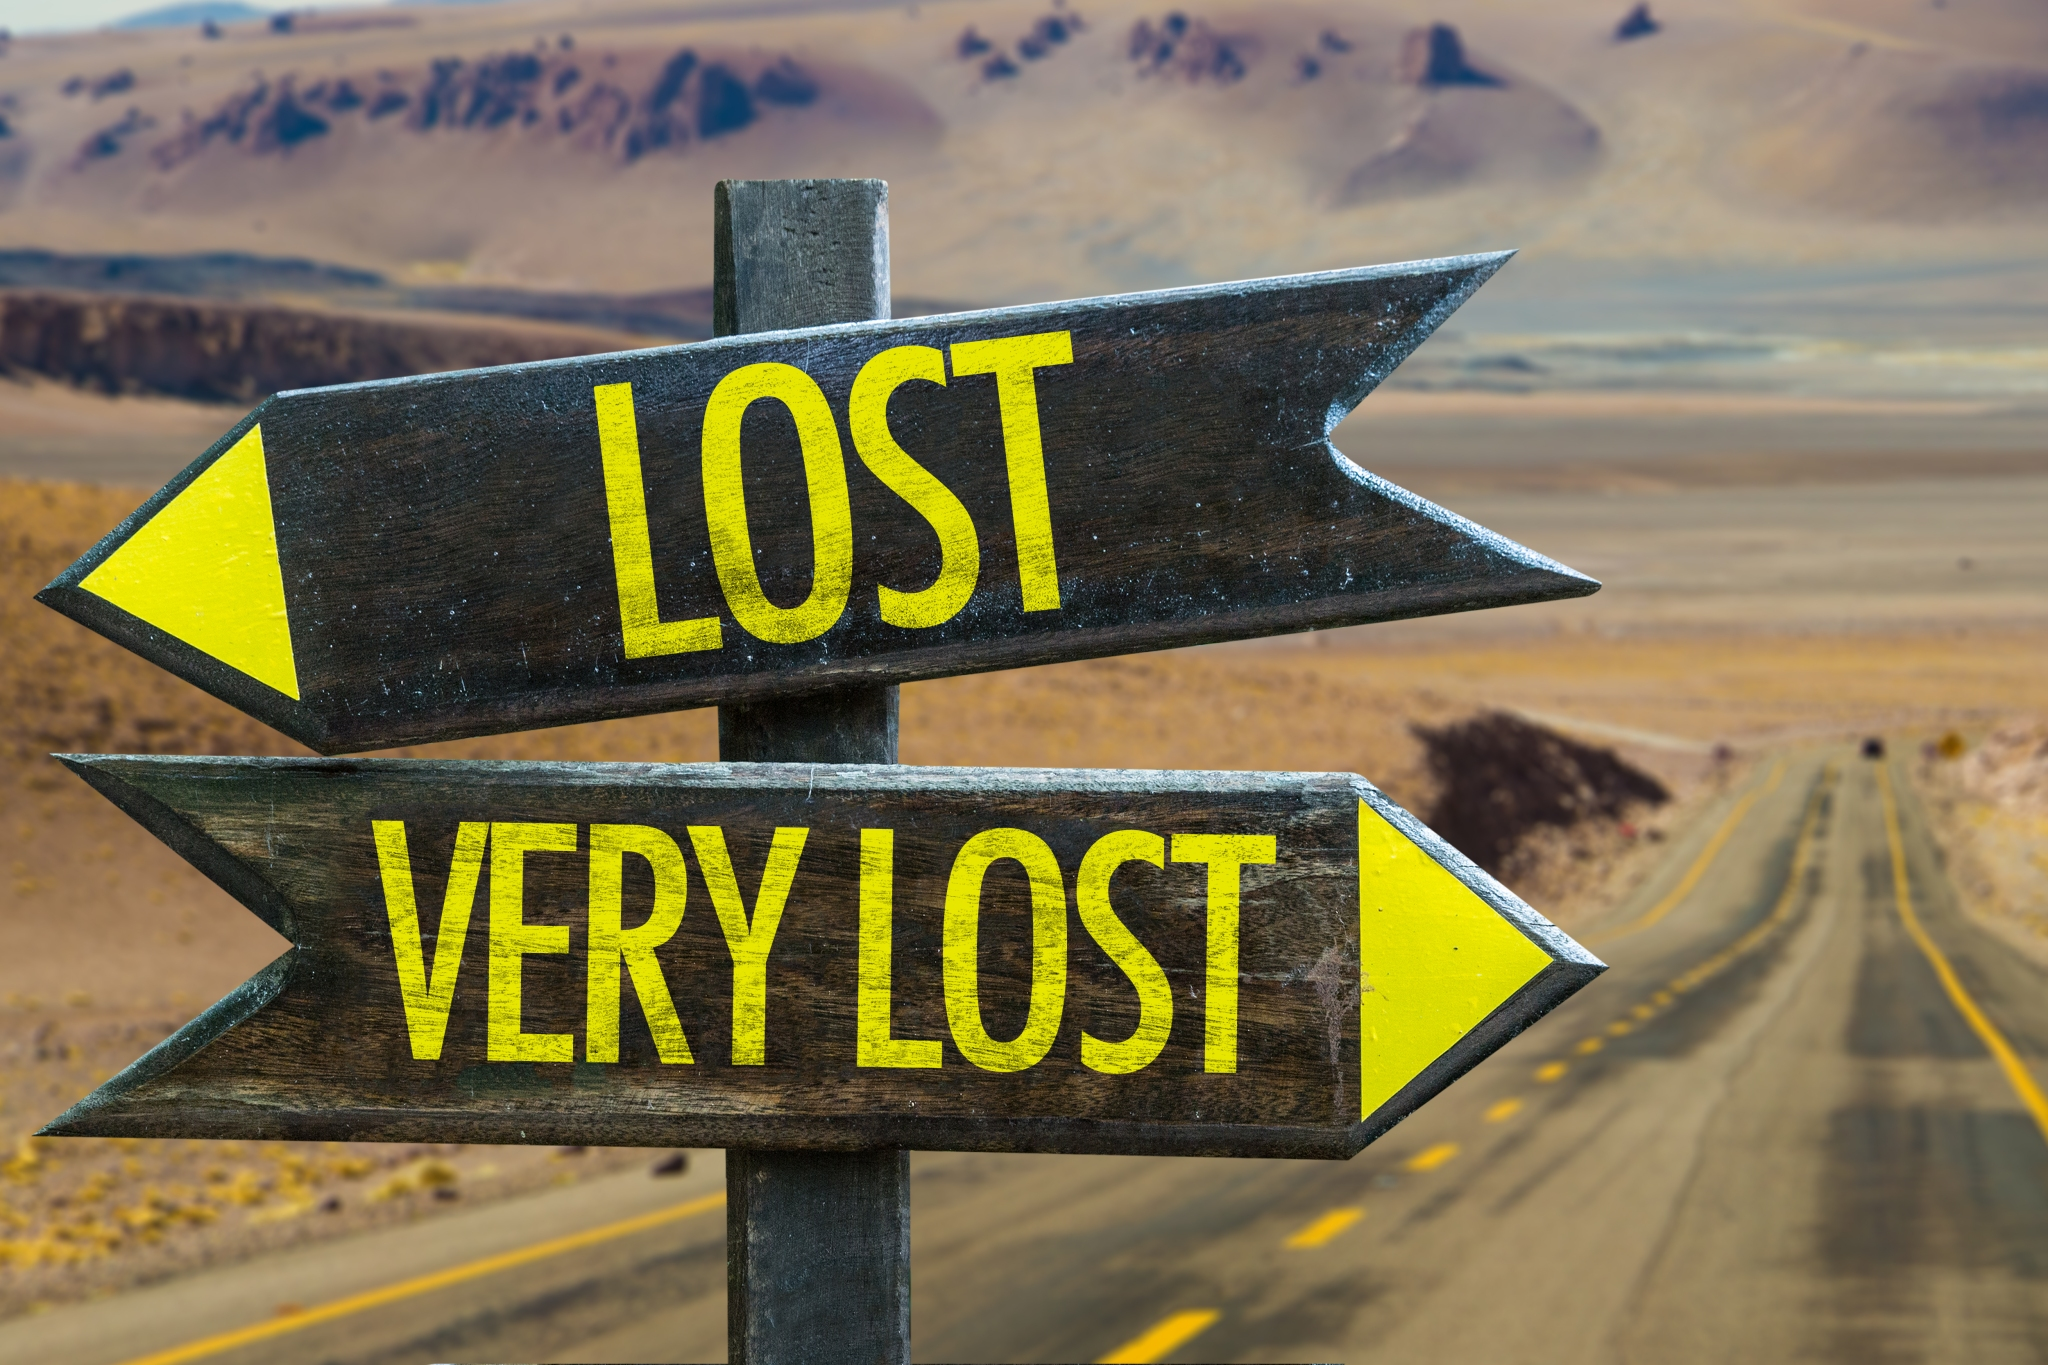 Lost - Very Lost sign